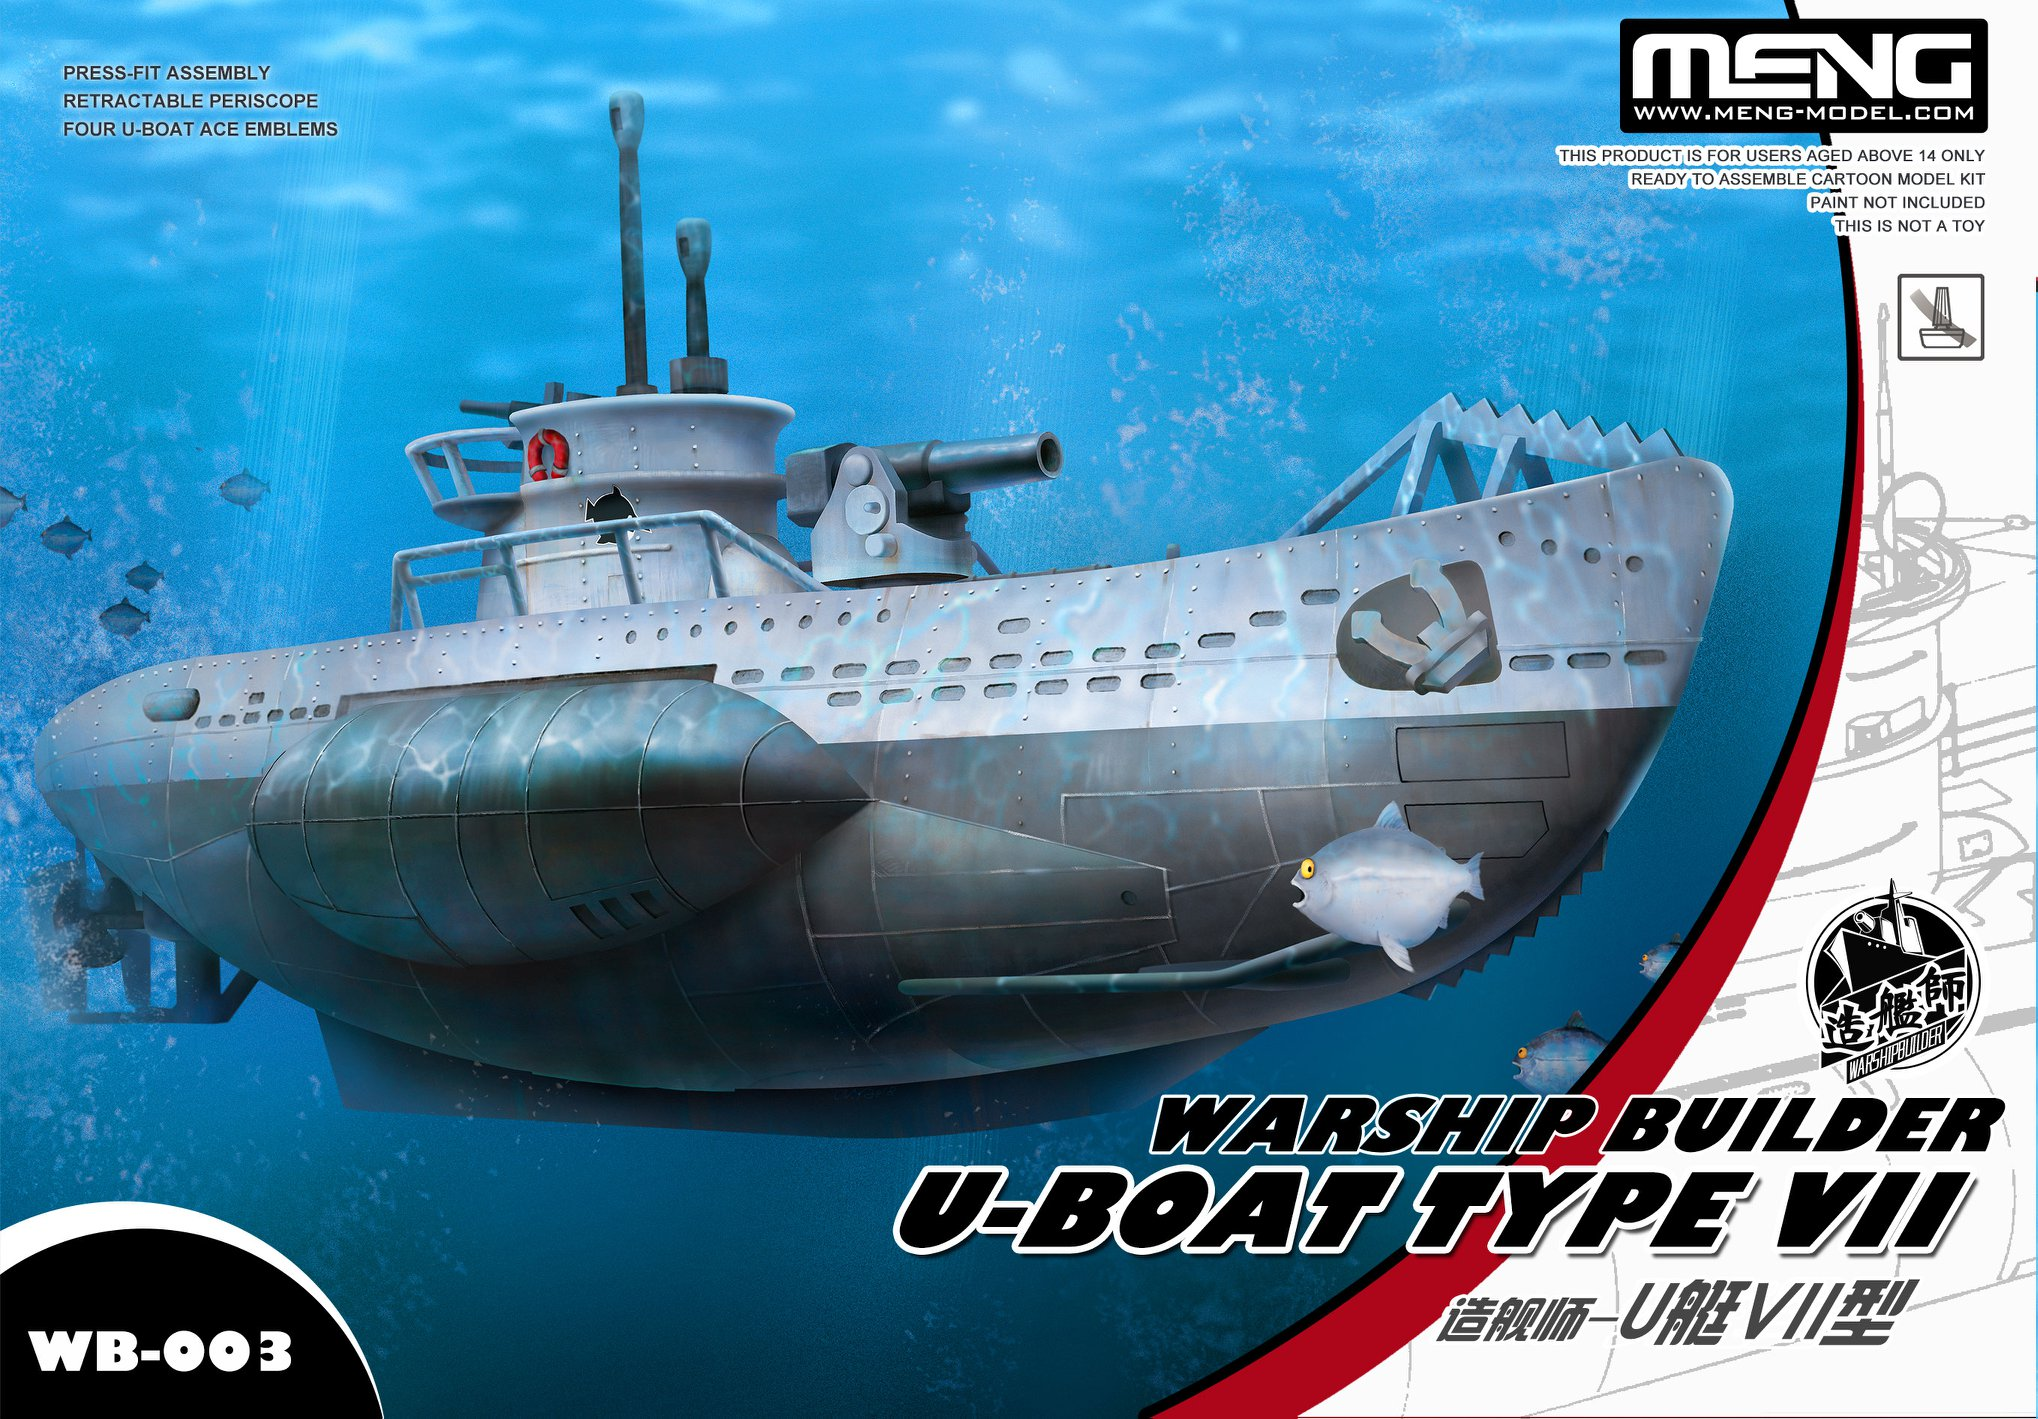 Warship Builder - U-Boat Type VII (Cartoon model)